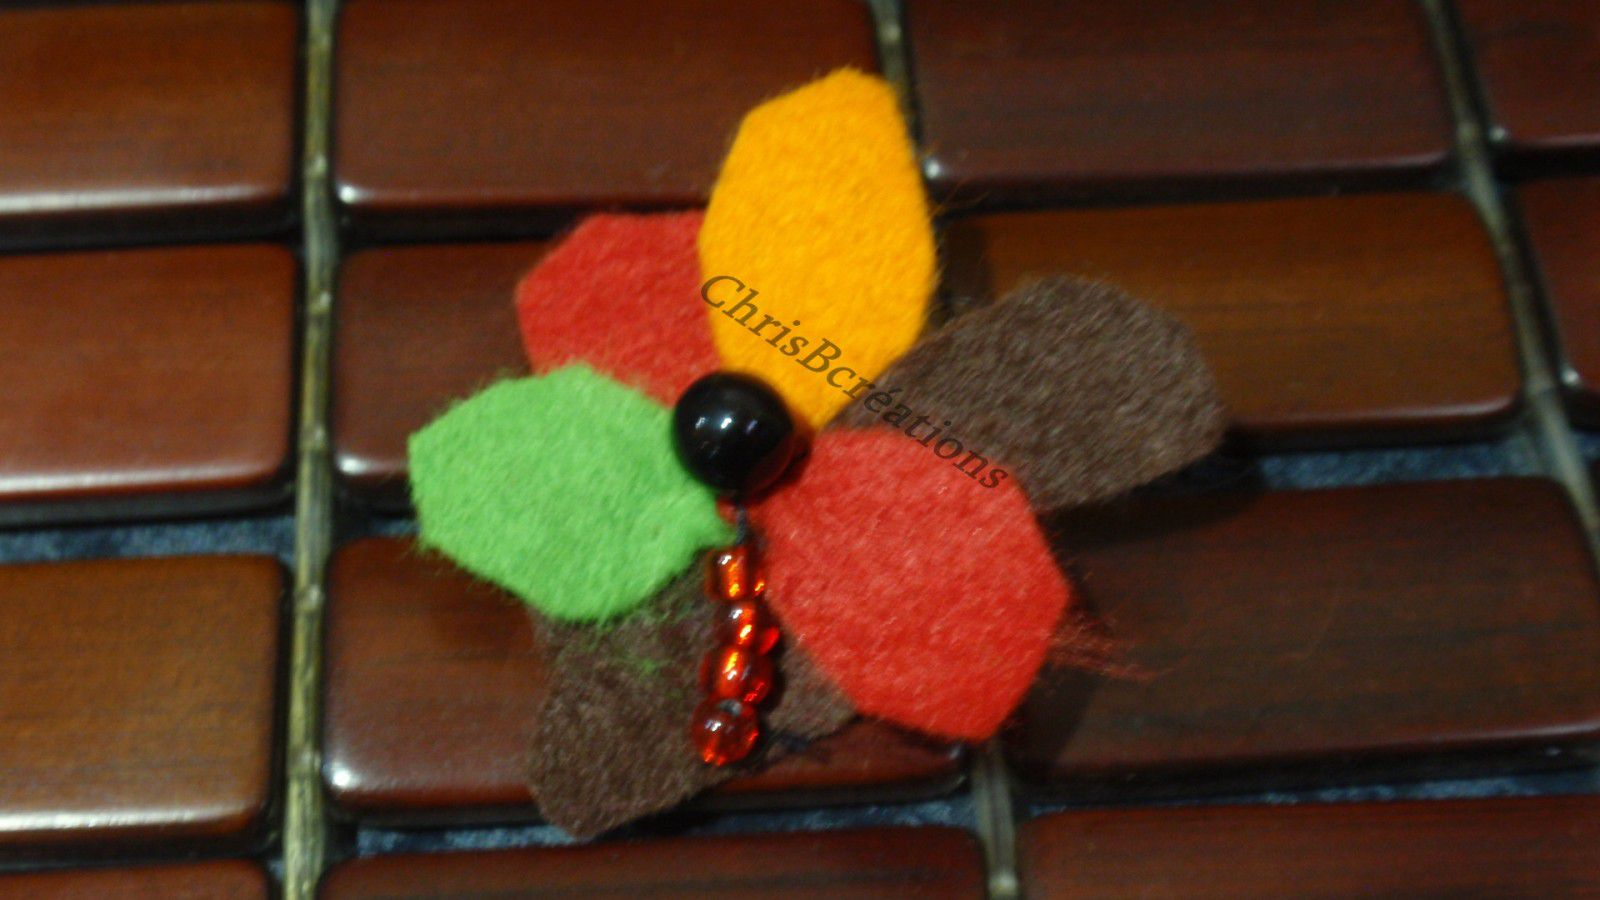 broches automne 15 12 2010 139